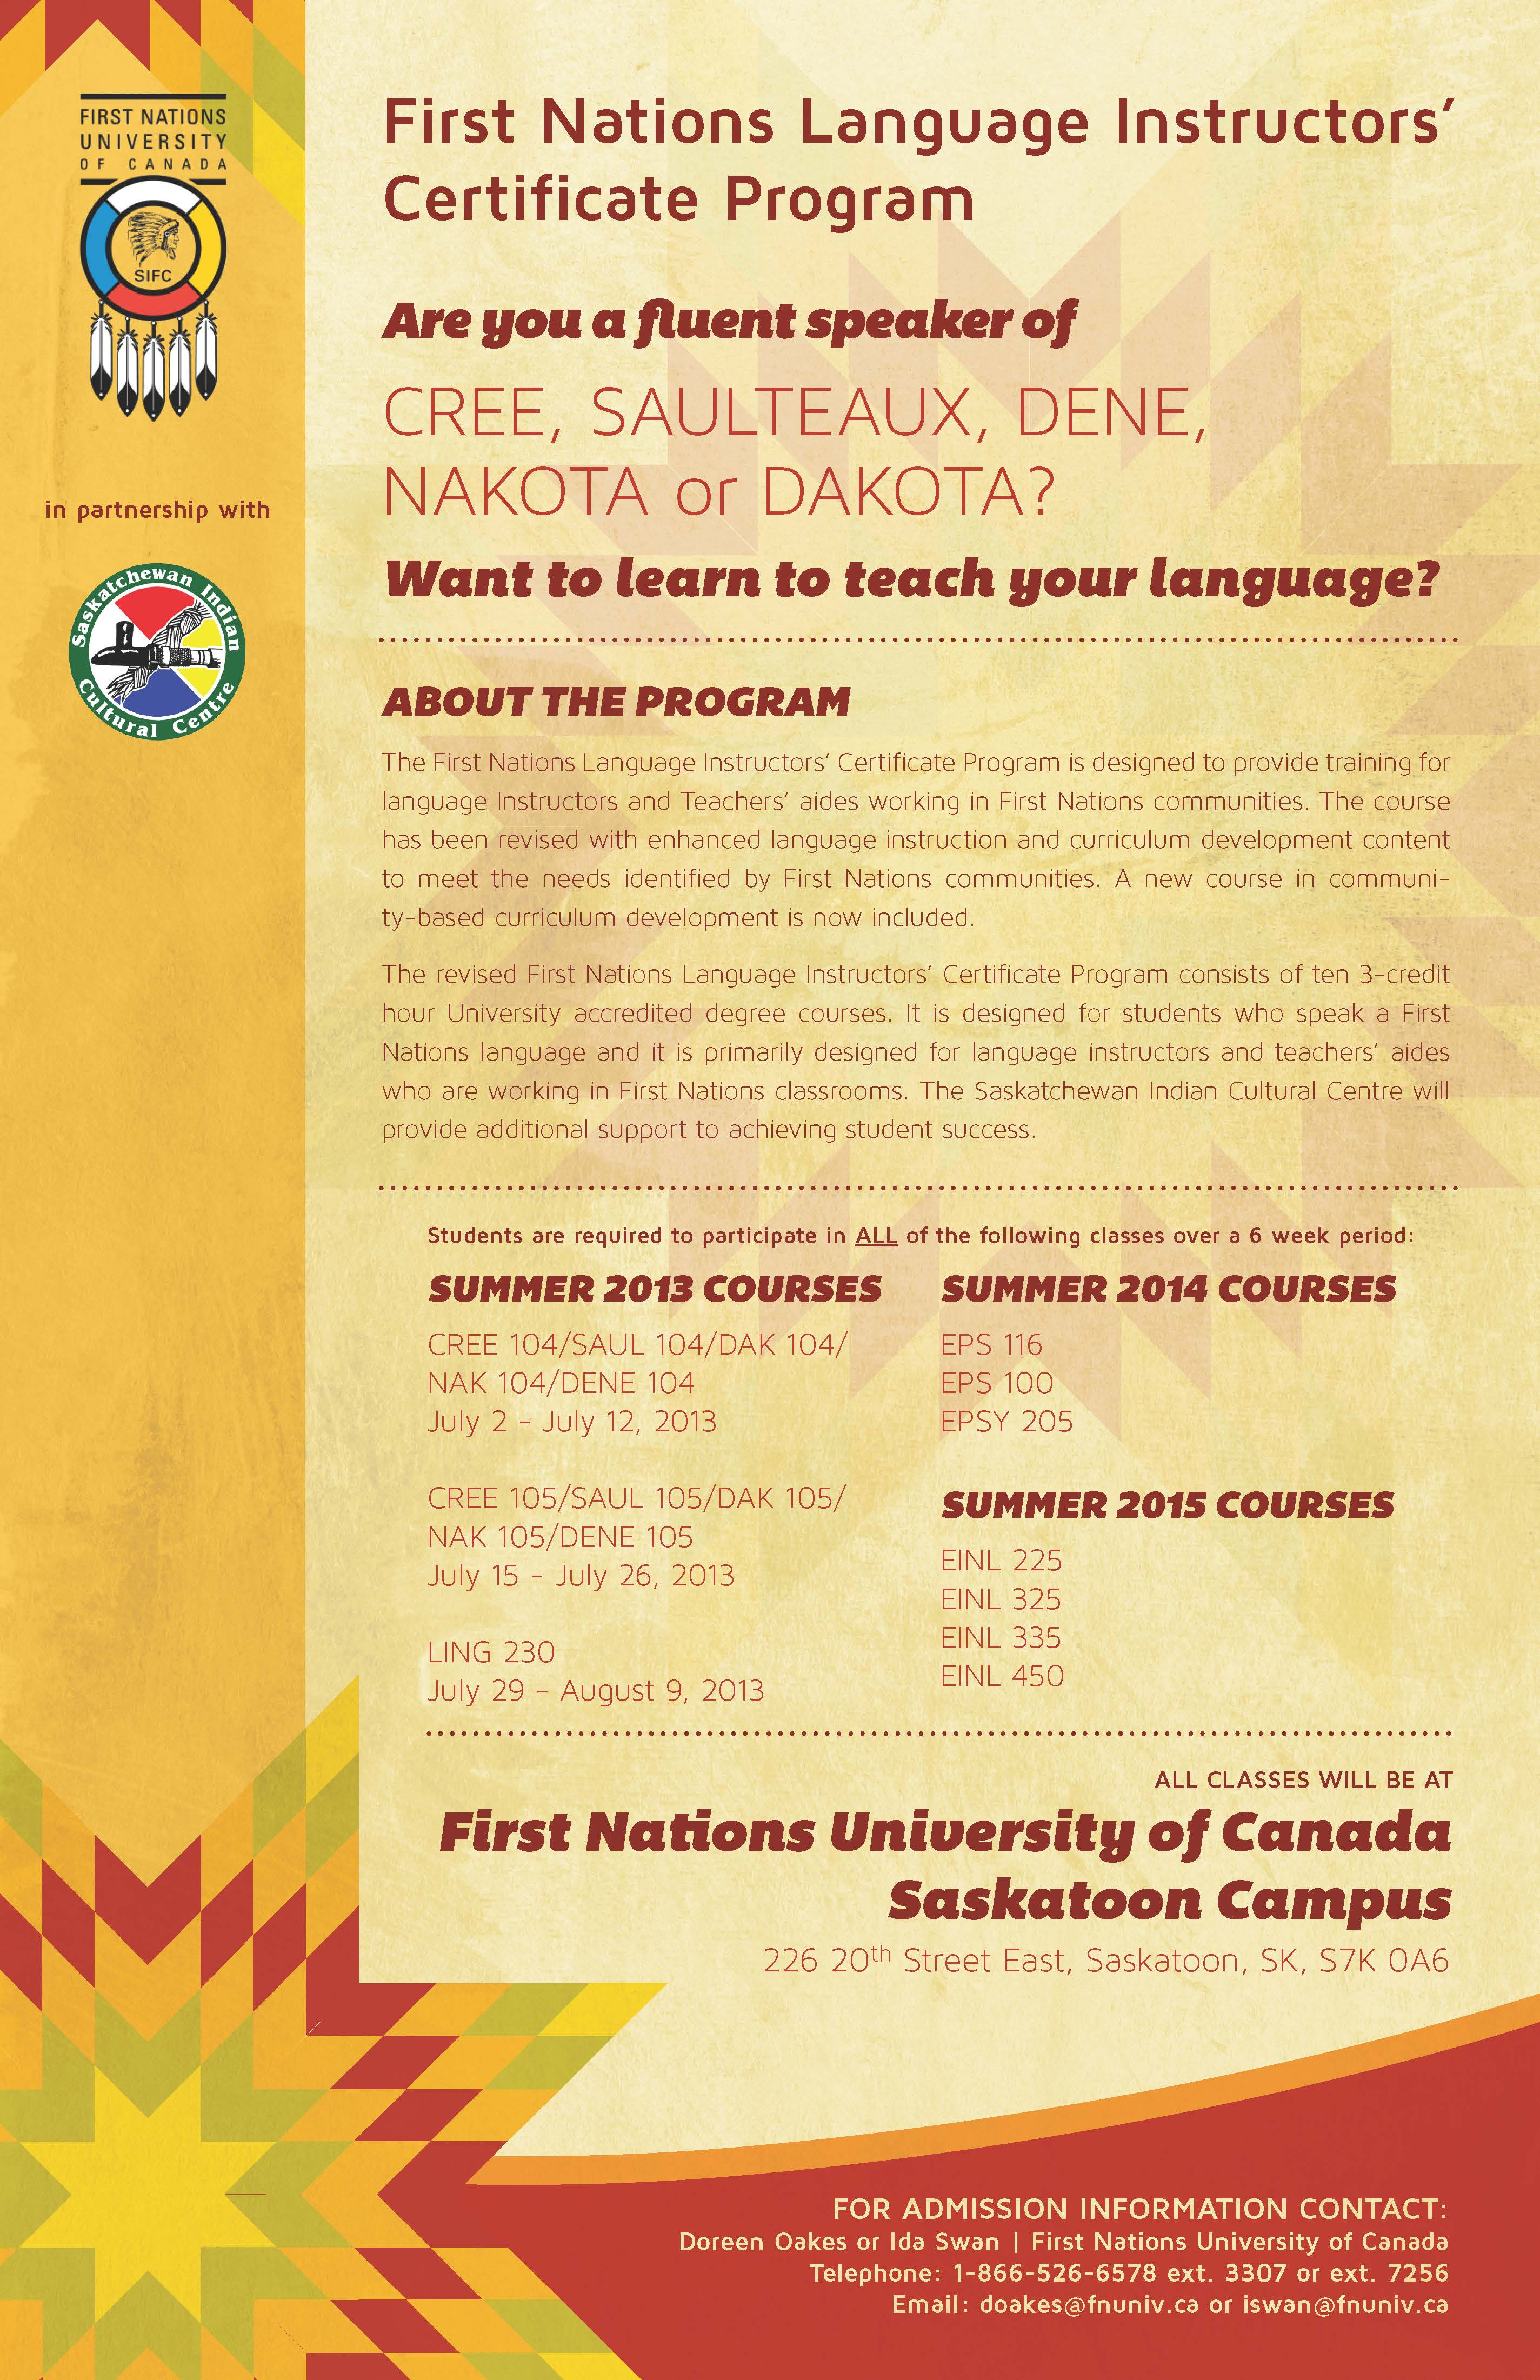 FNUC First Nations Language Instructors Certificate Program